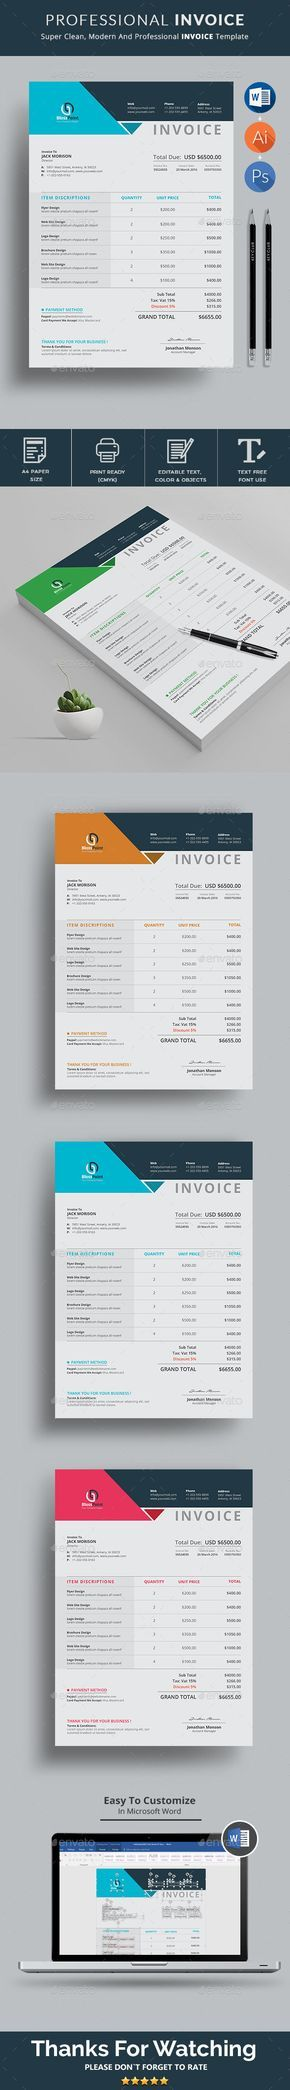 Invoice Template Use this Clean Invoice for